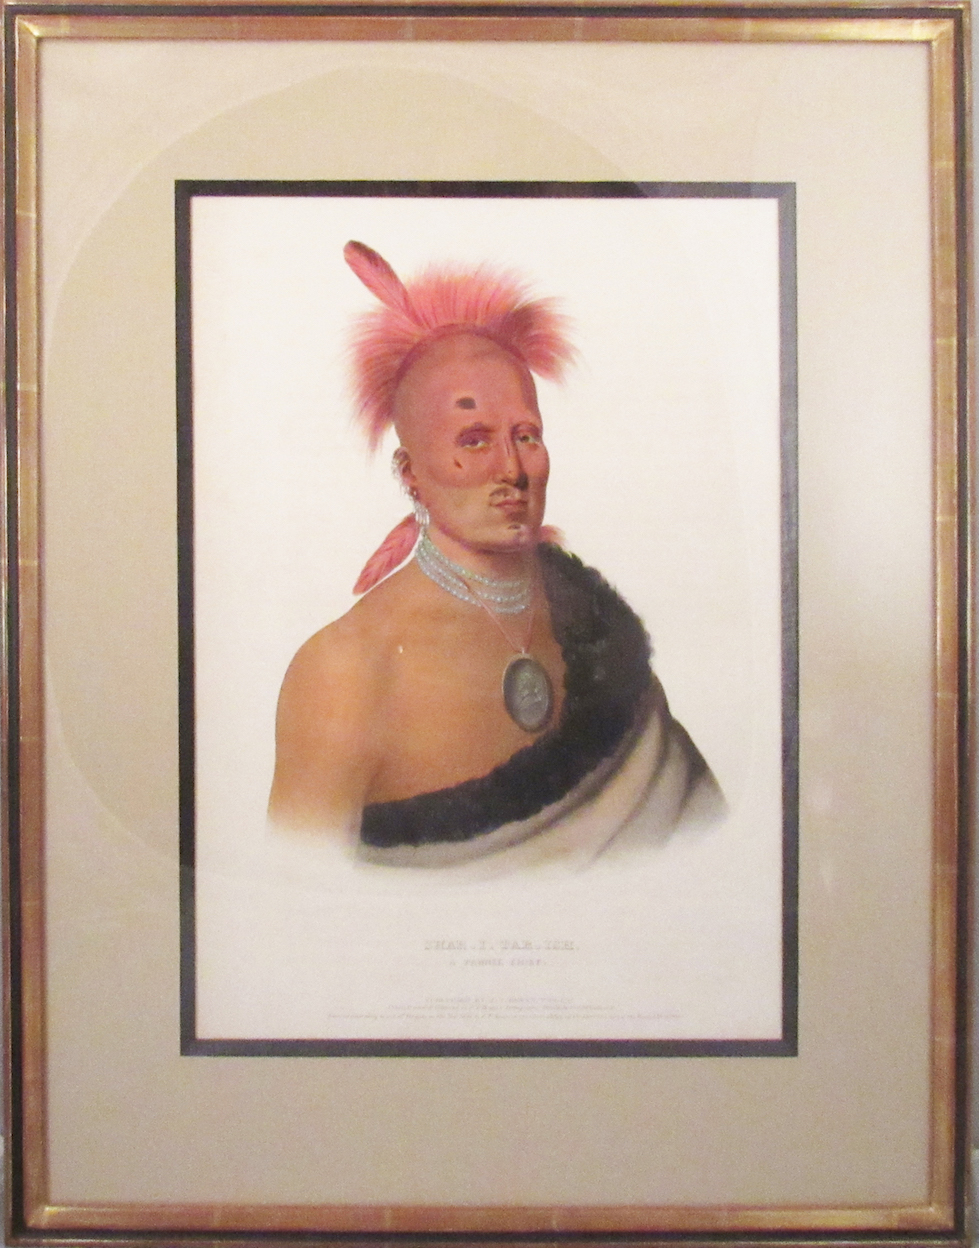 [Plate] SHAR-I-TAR-ISH. A Pawnee Chief. [From HISTORY OF THE INDIAN TRIBES OF NORTH AMERICA]. Native American, Thomas L. McKenney, James Hall.